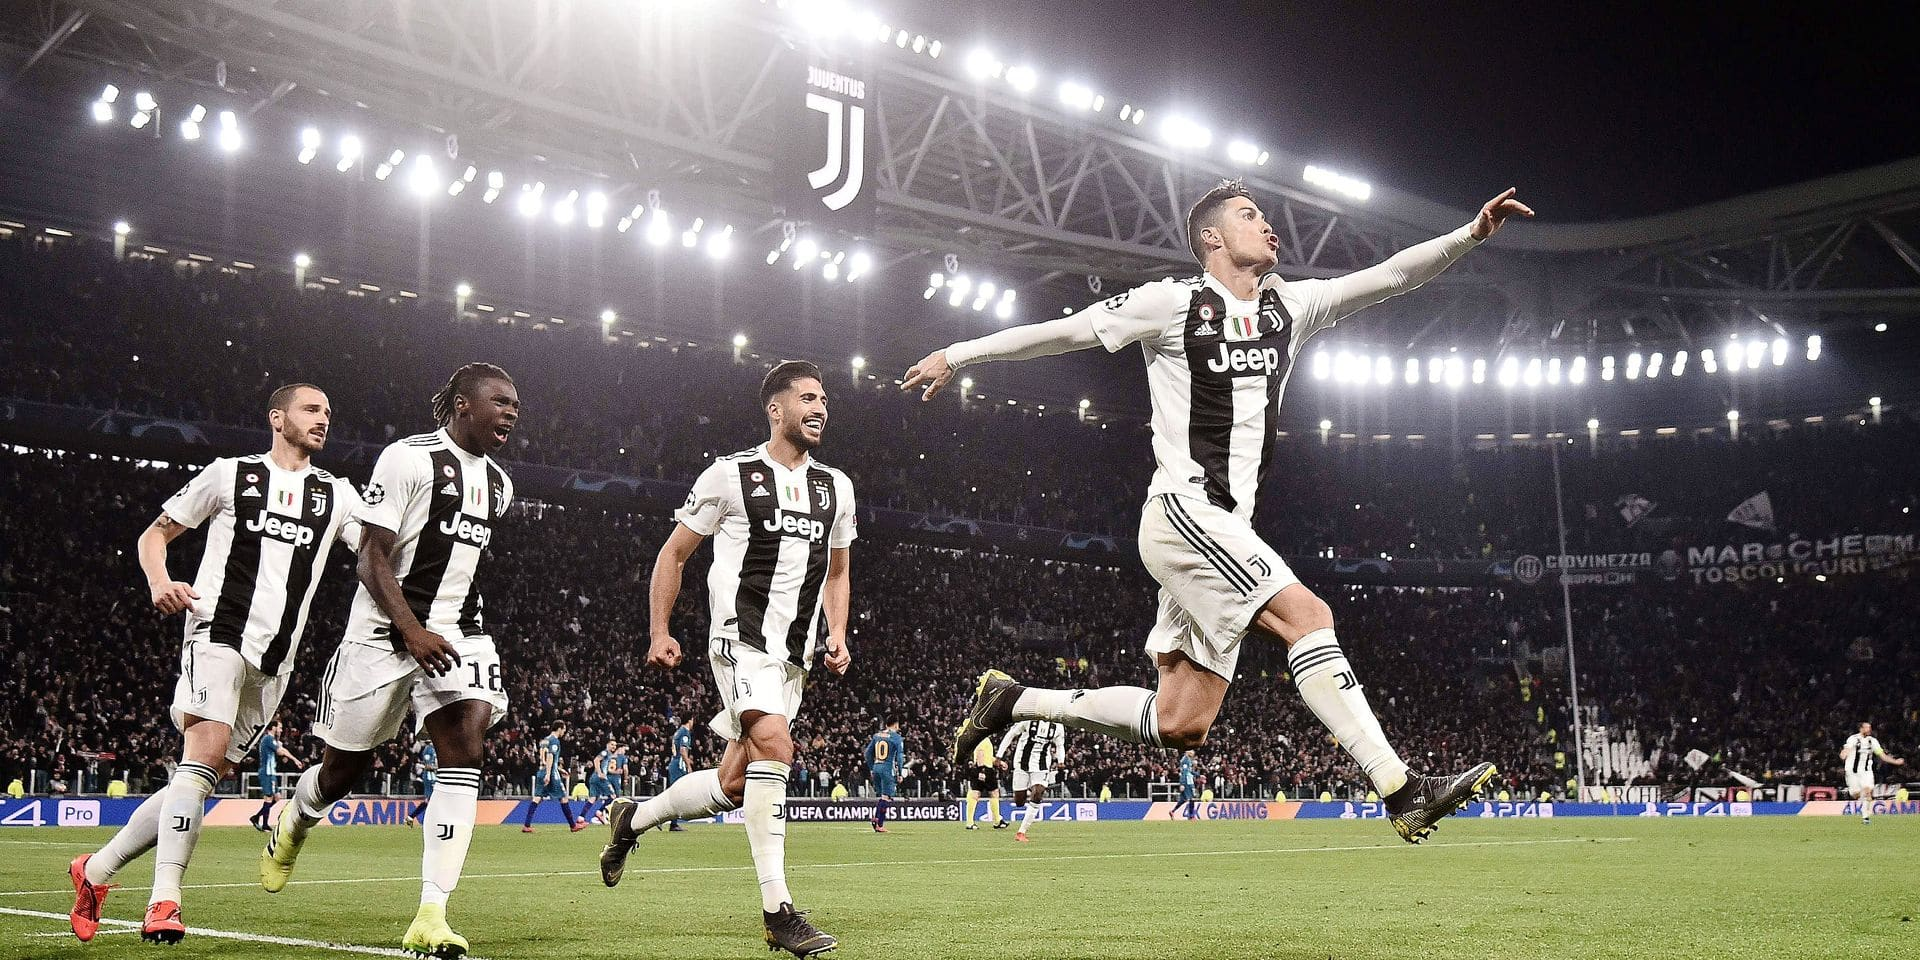 Juventus' Portuguese forward Cristiano Ronaldo (R) celebrates after scoring 3-0 during the UEFA Champions League round of 16 second-leg football match Juventus vs Atletico Madrid on March 12, 2019 at the Juventus stadium in Turin. (Photo by Marco BERTORELLO / AFP)